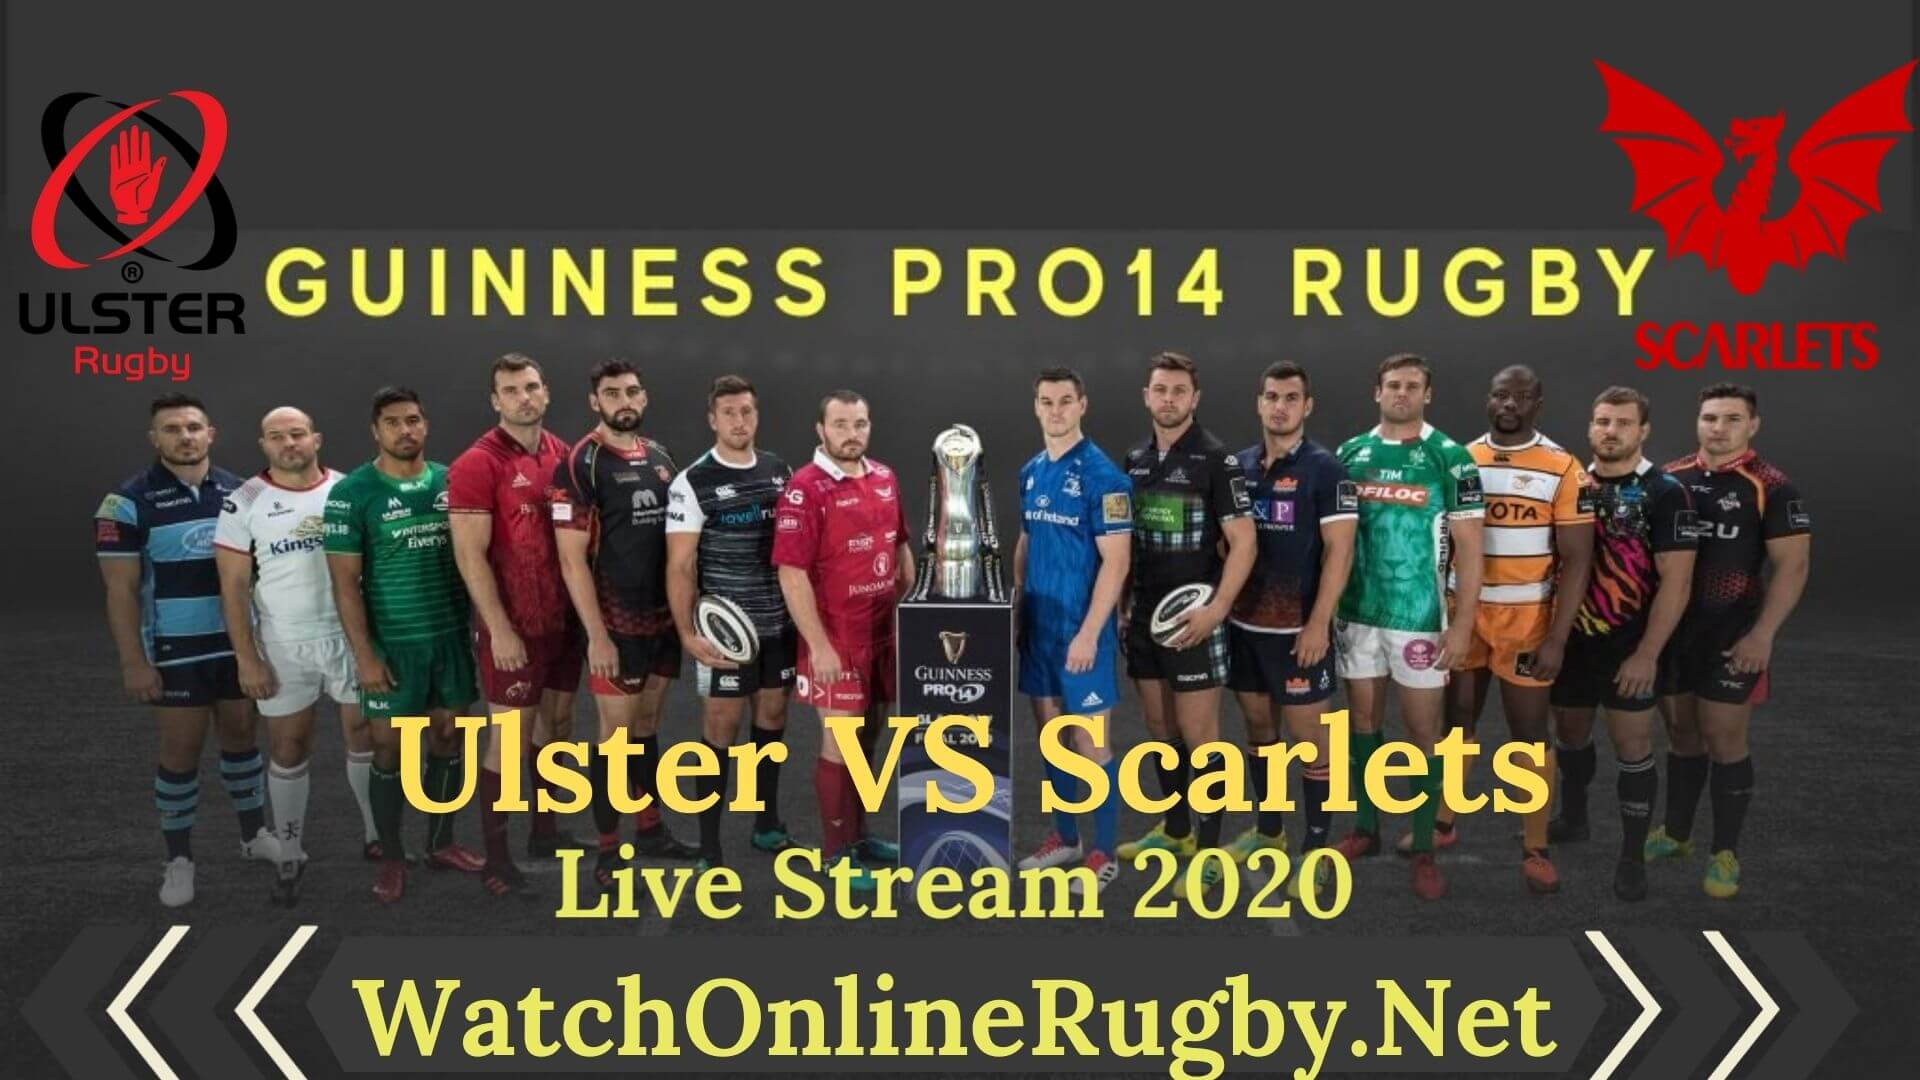 scarlets-vs-ulster-rugby-live-stream